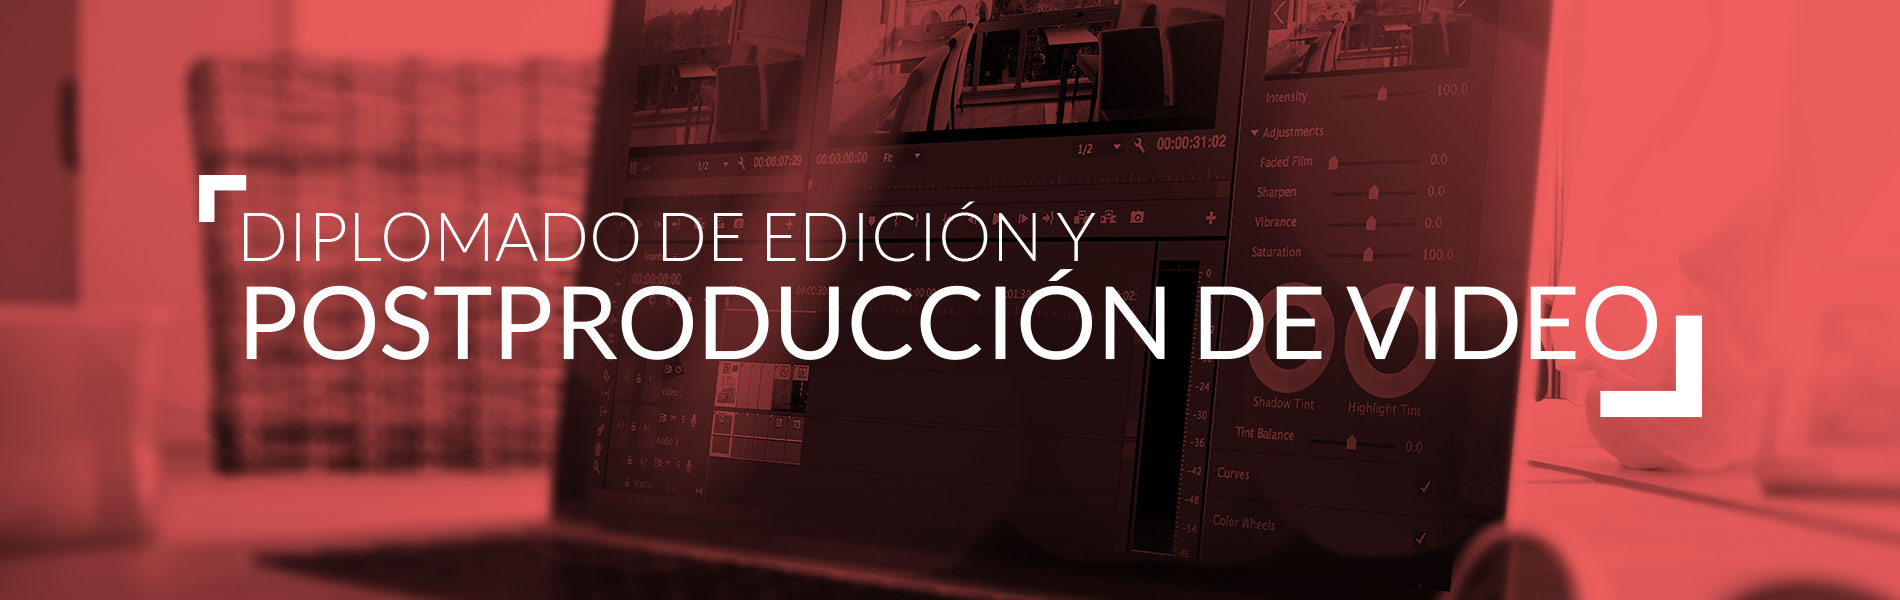 Diplomado de edición y post producción de video